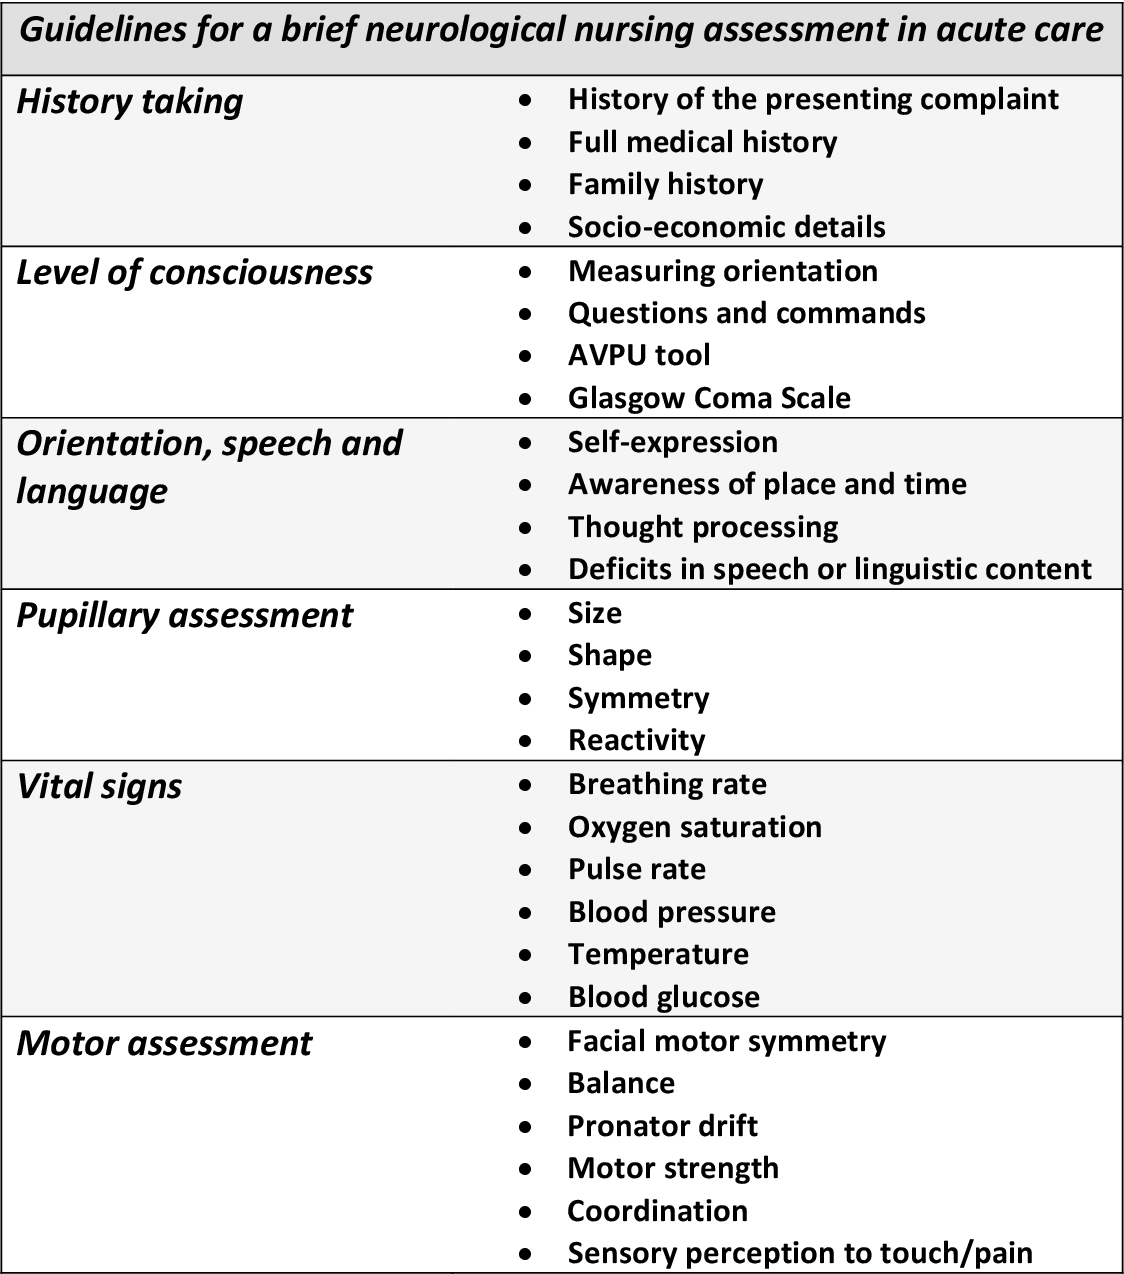 Guidelines For A Brief Neurological Nursing Assessment In Acute Care A Literature Review Semantic Scholar Detailed nursing assessment of specific body system(s) relating to the. brief neurological nursing assessment